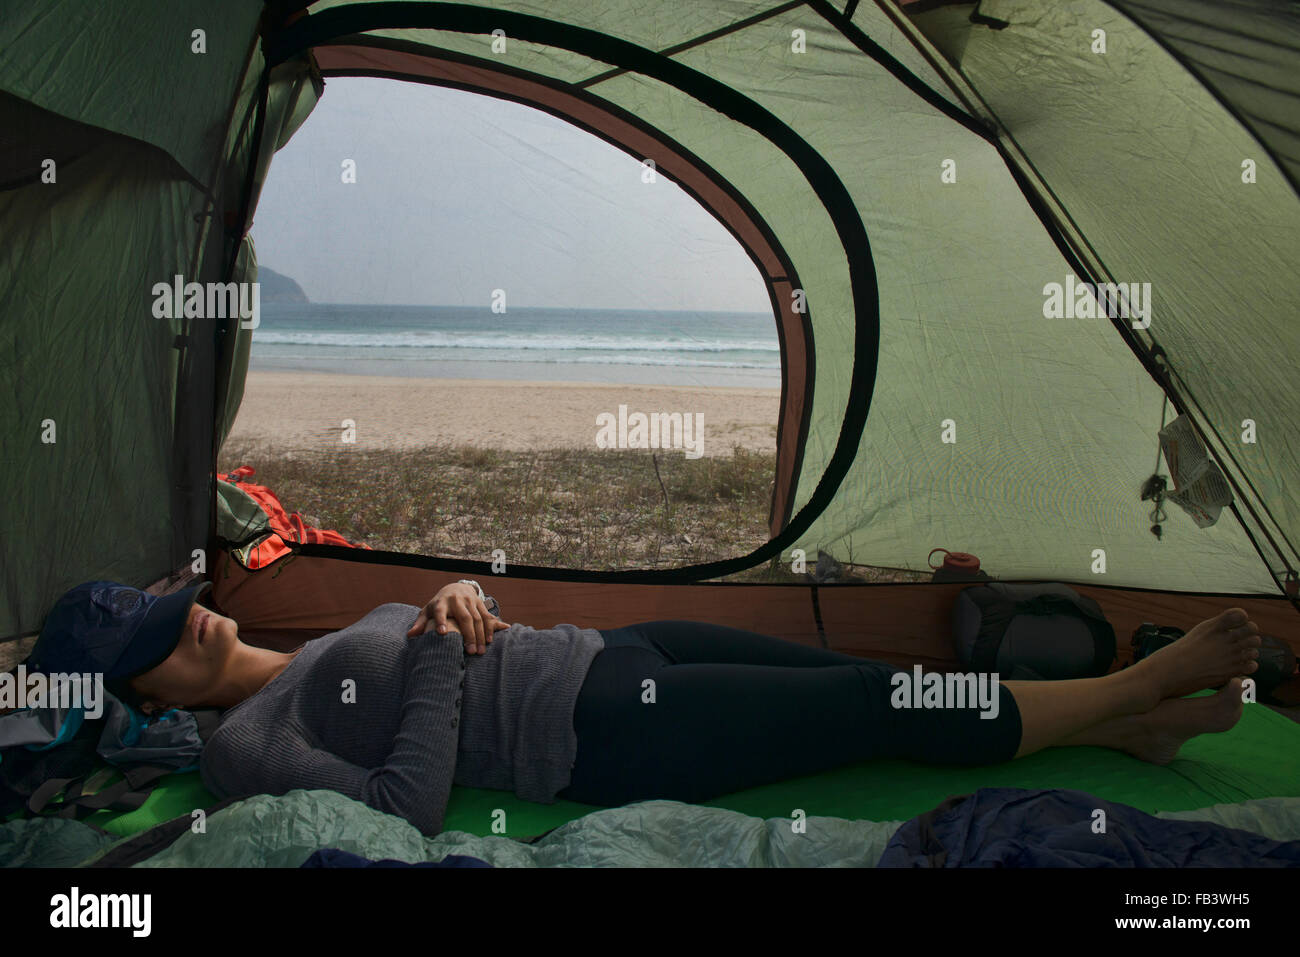 Camping on empty Tai Long Wan (Big Wave Bay) beach, Sai Kung, Hong Kong - Stock Image